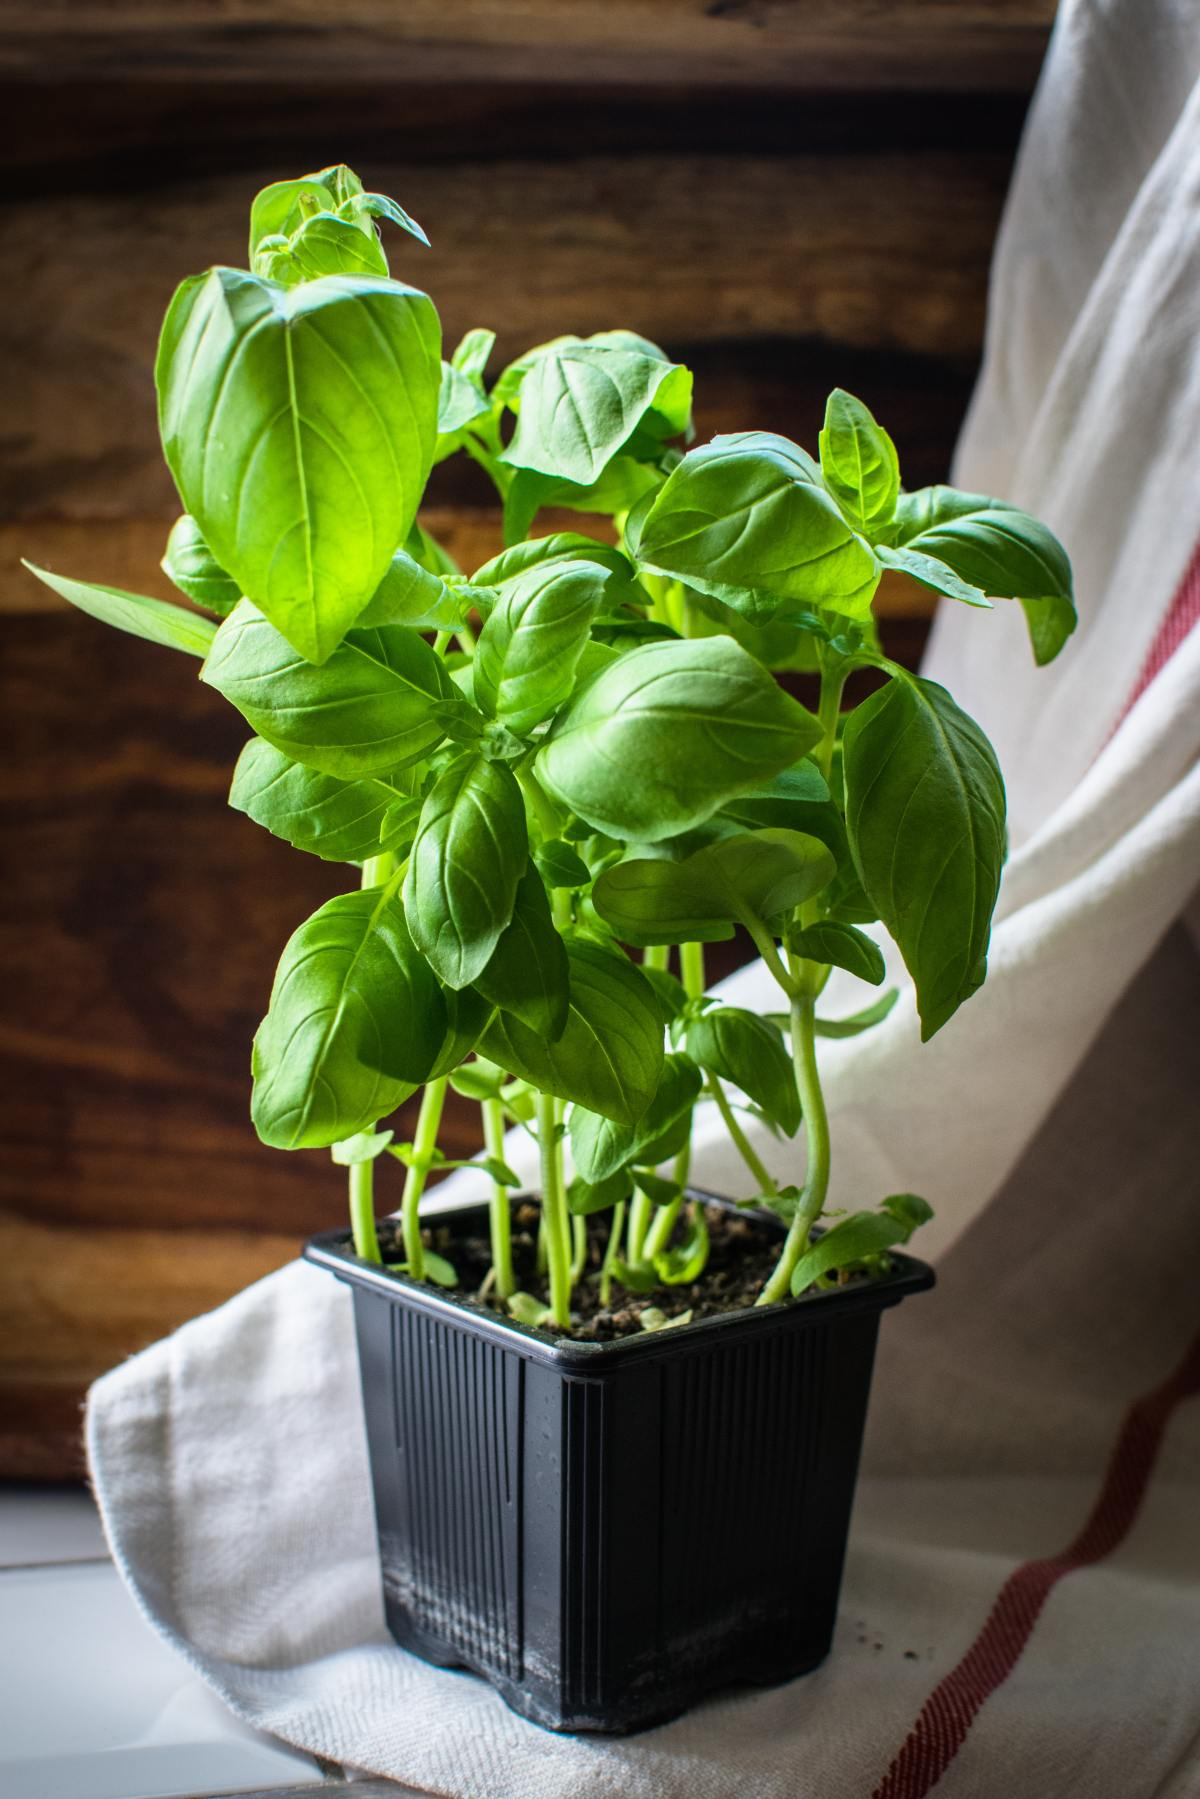 Basil is both indoor and outdoor plant